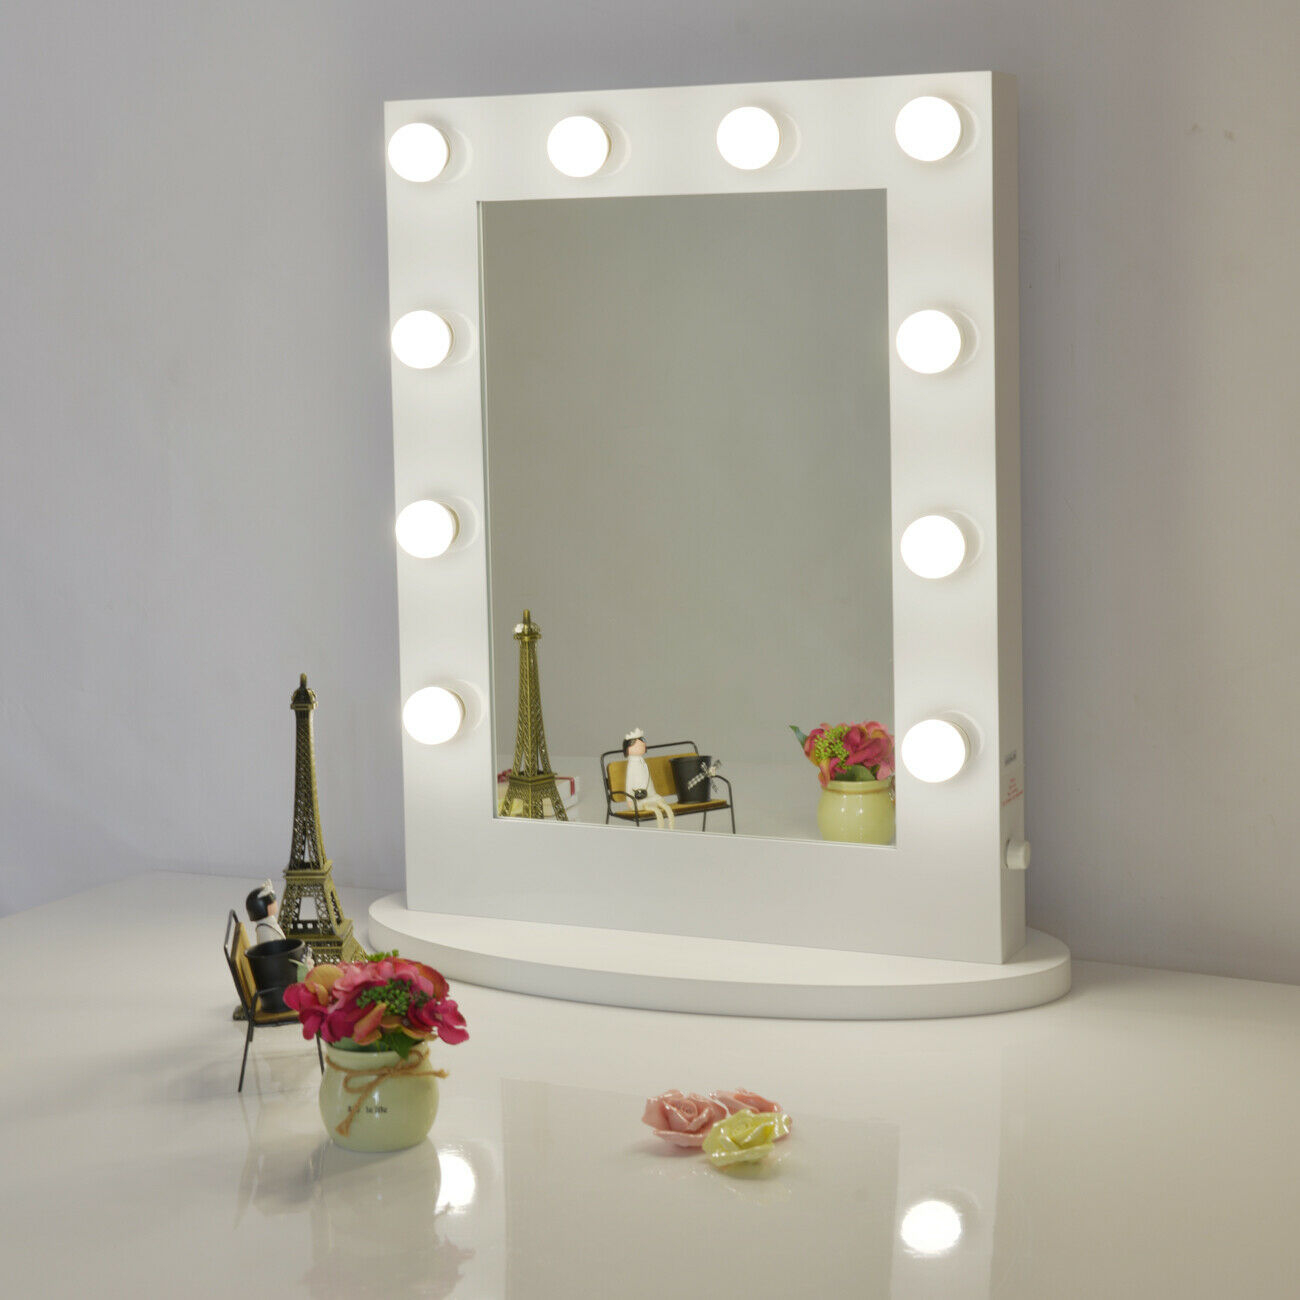 50 Vanity Mirror With Light Bulbs